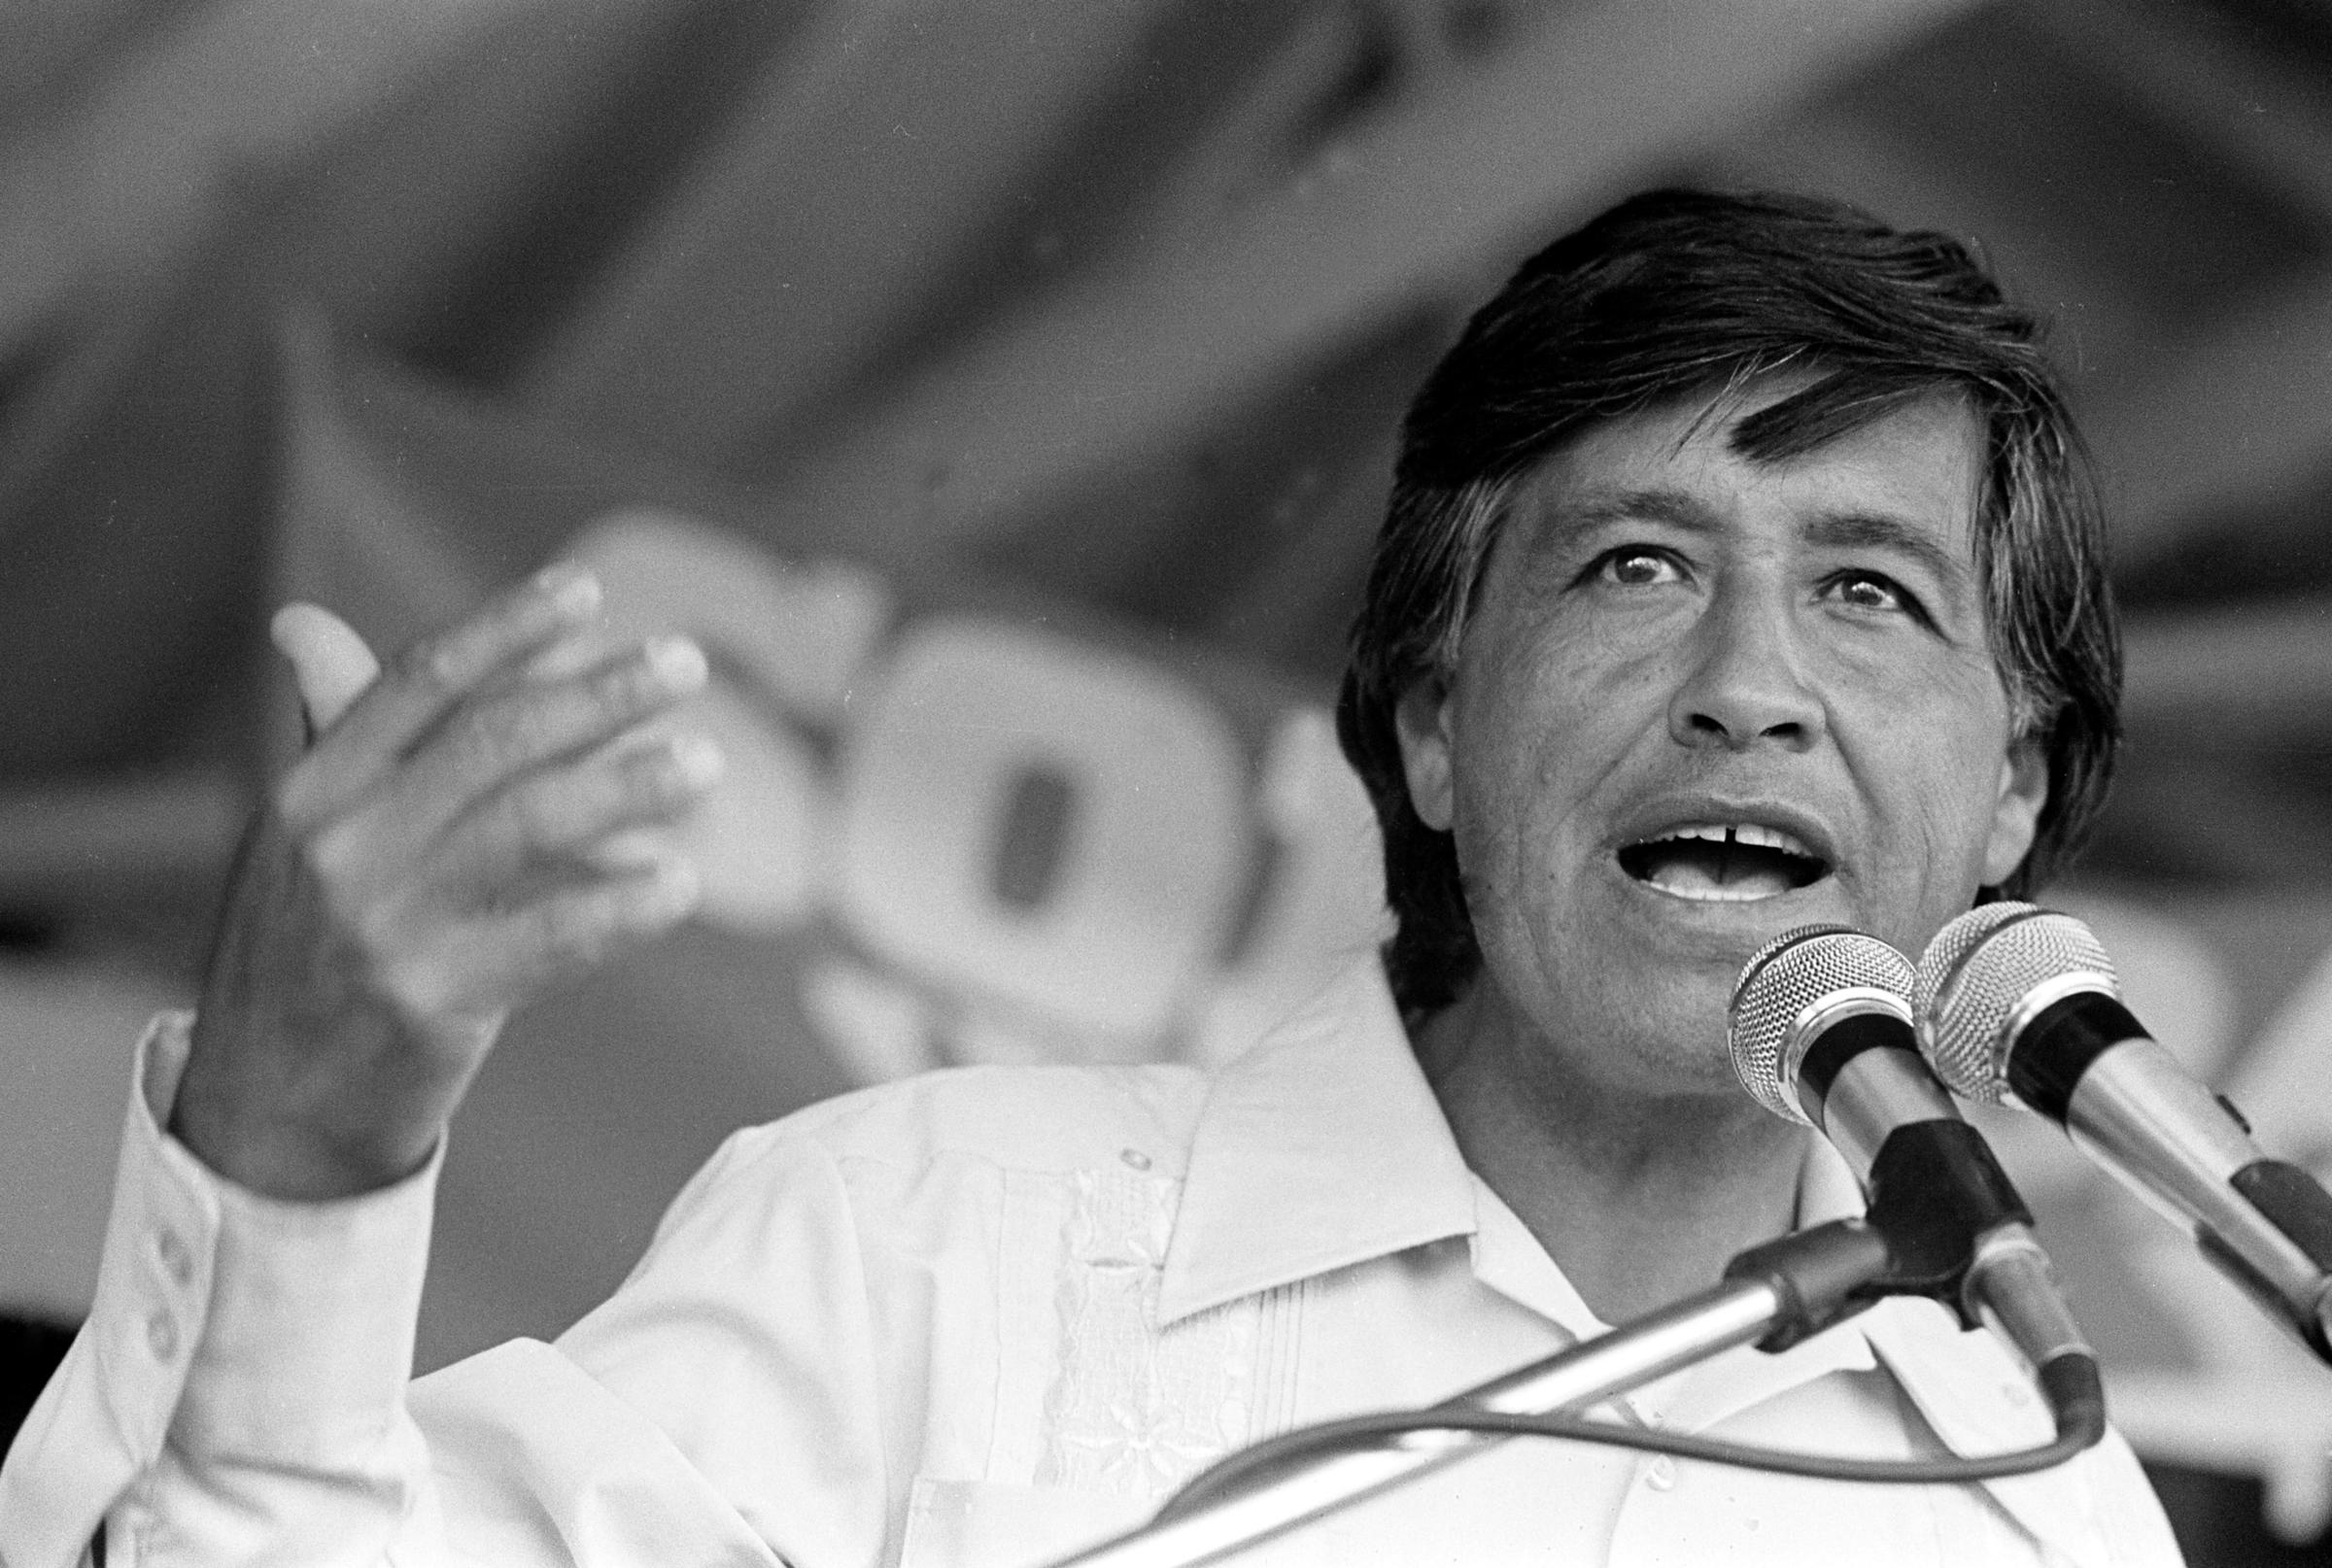 cesar chavez discussing the movie and the man kut